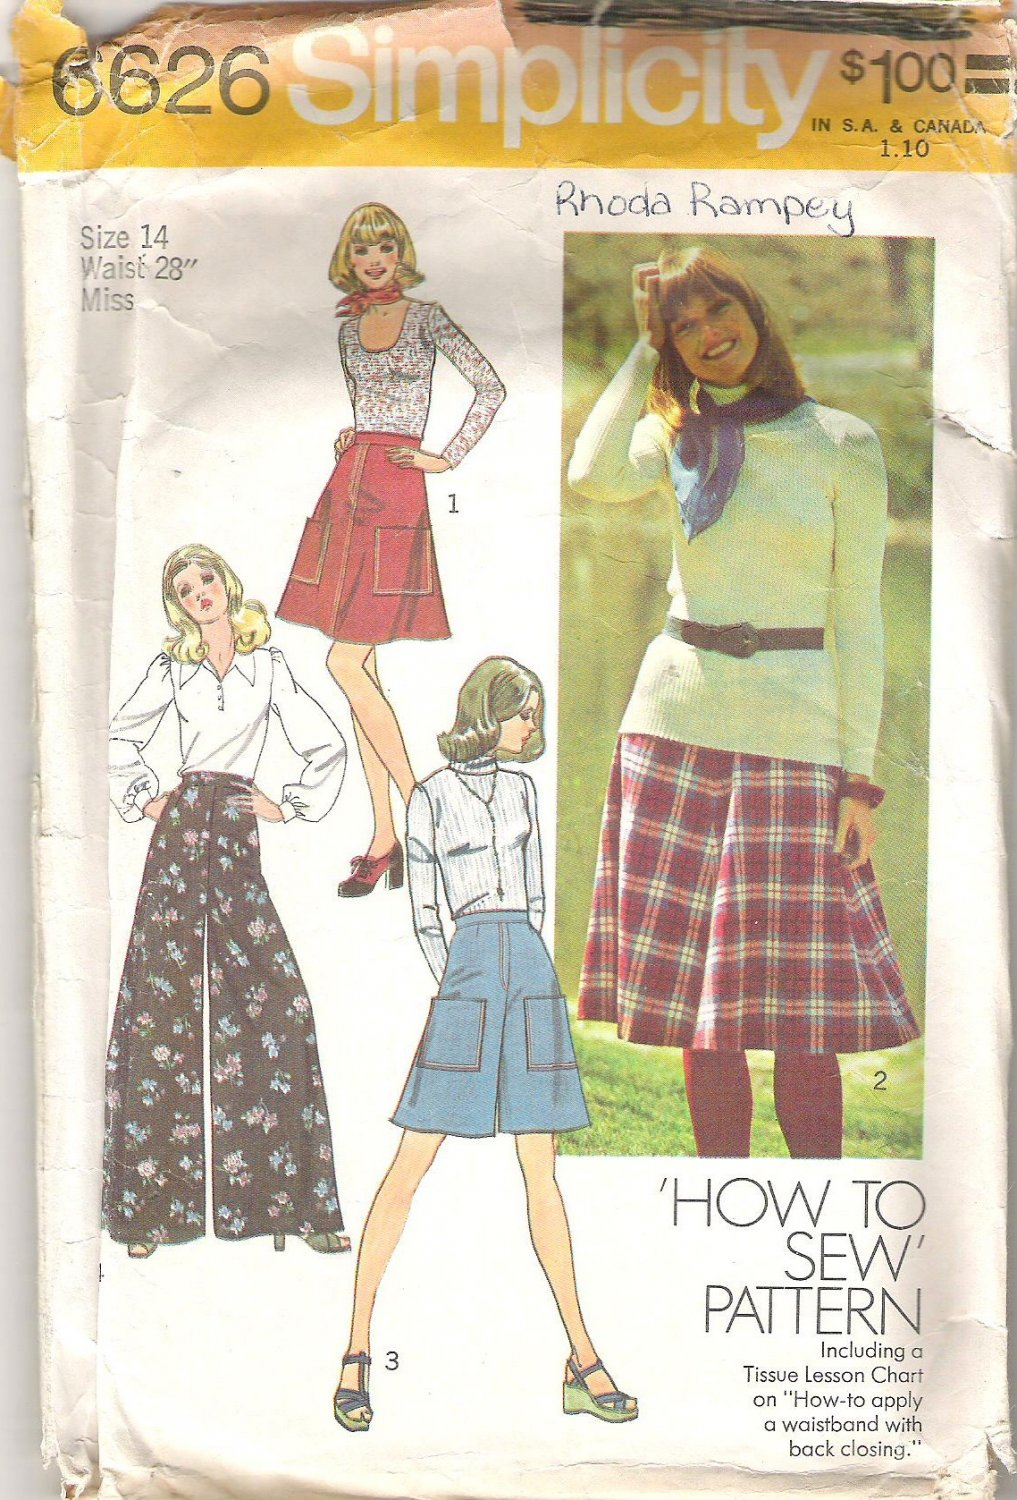 1974 Simplicity 6626 Pattern Vintage Skirt and Pantskirt Extra Wide Legs  Size 14  Partial Cut